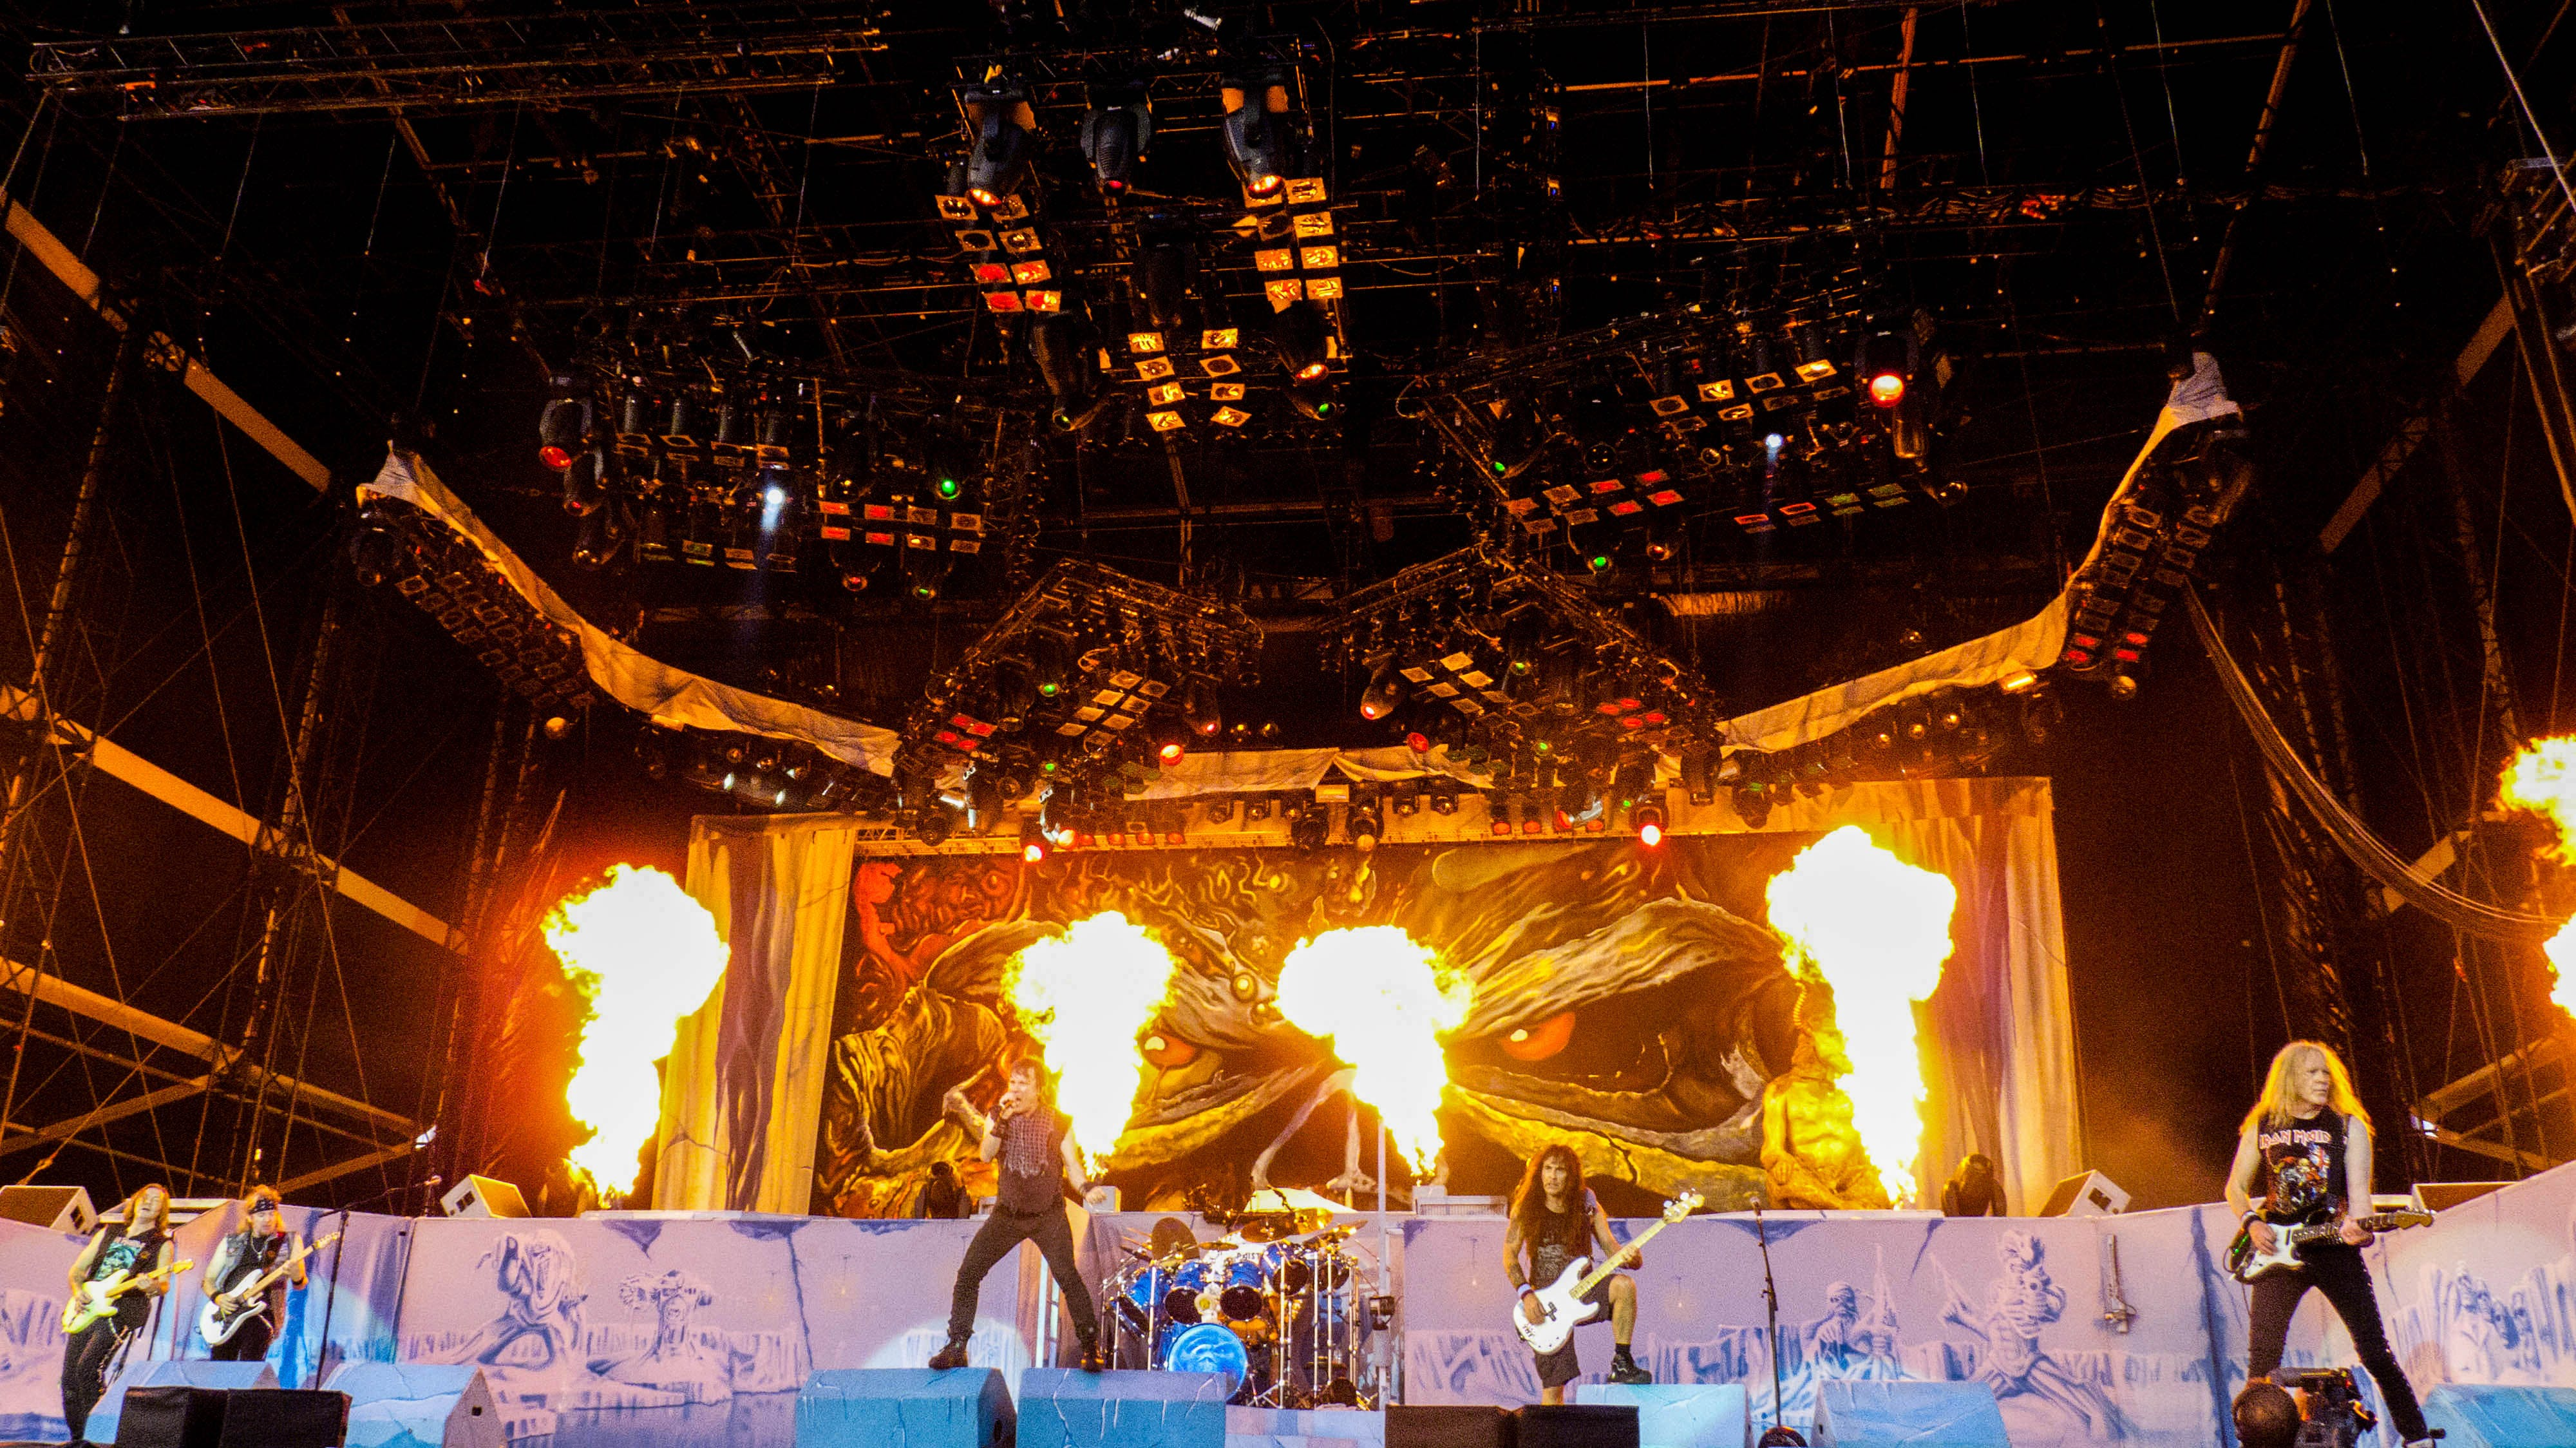 Band Playing on Stage With Fire